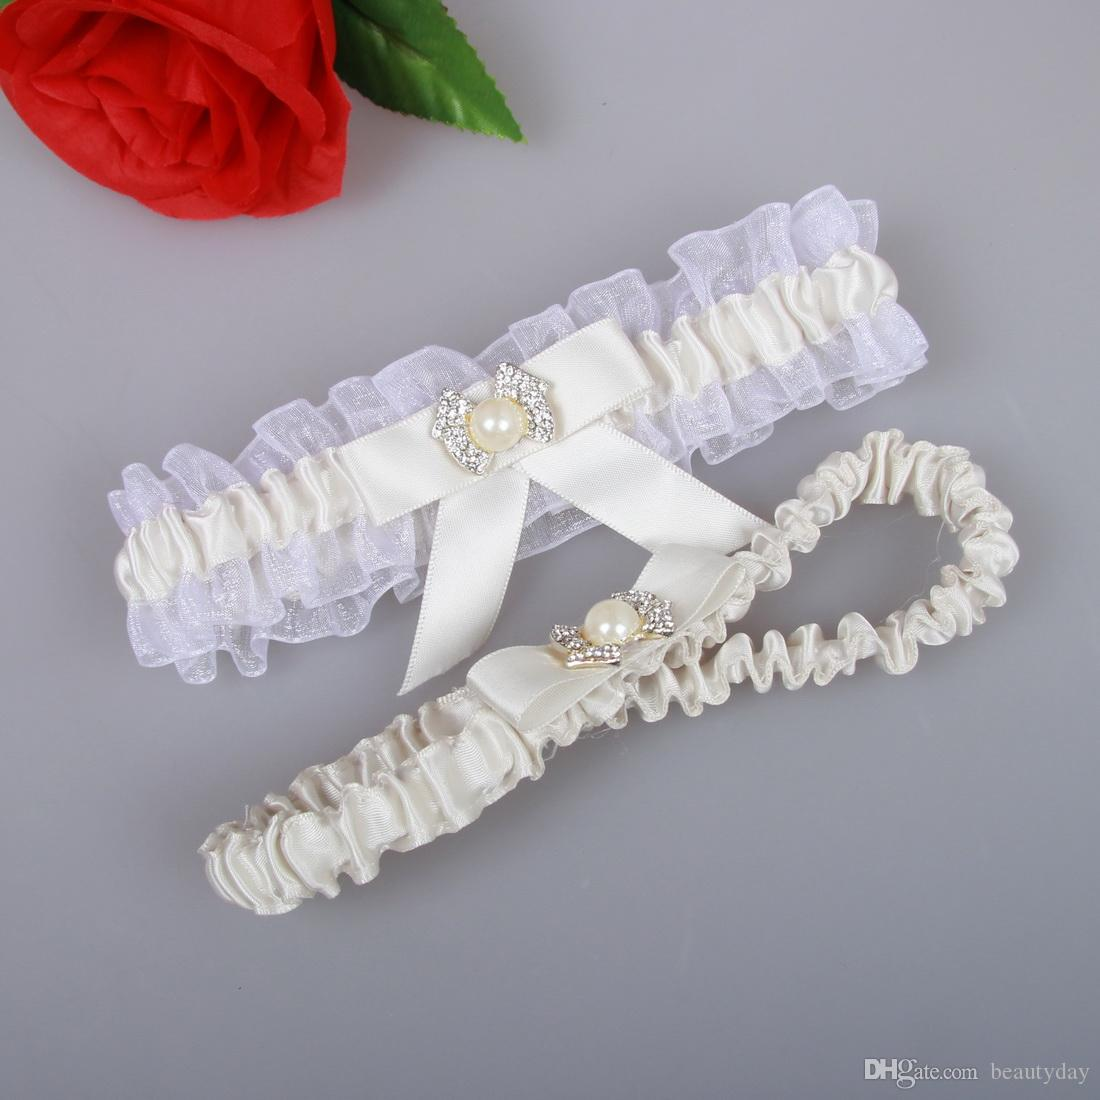 White Ivory Wedding Leg Garters Elastic Lace Sexy Feminine Crystals Bow Women Lady Sheer Vintage Bridal Accessories